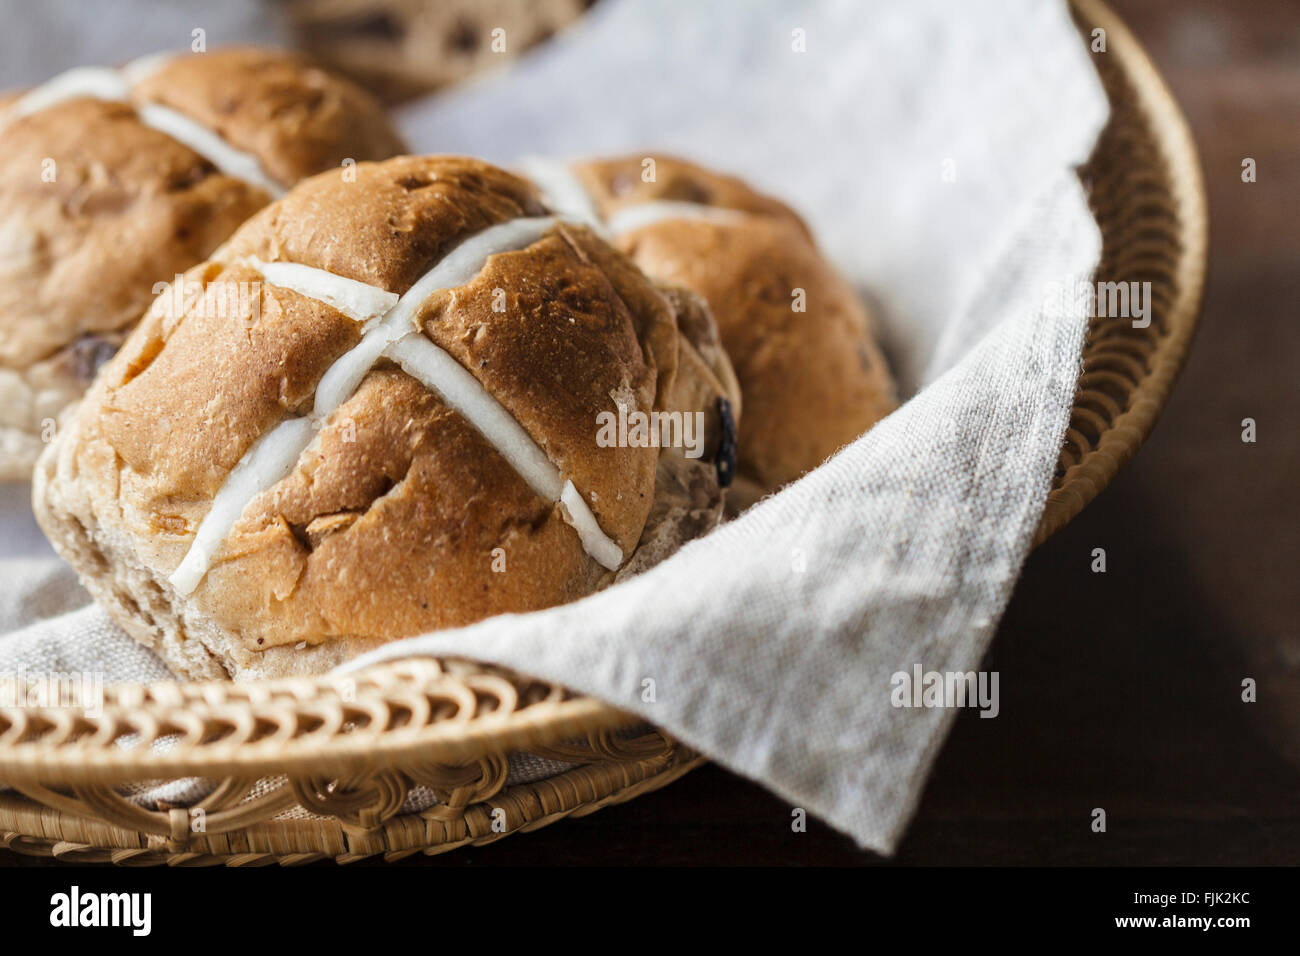 Three Easter hot cross buns in a basket on a rustic wooden table - Stock Image